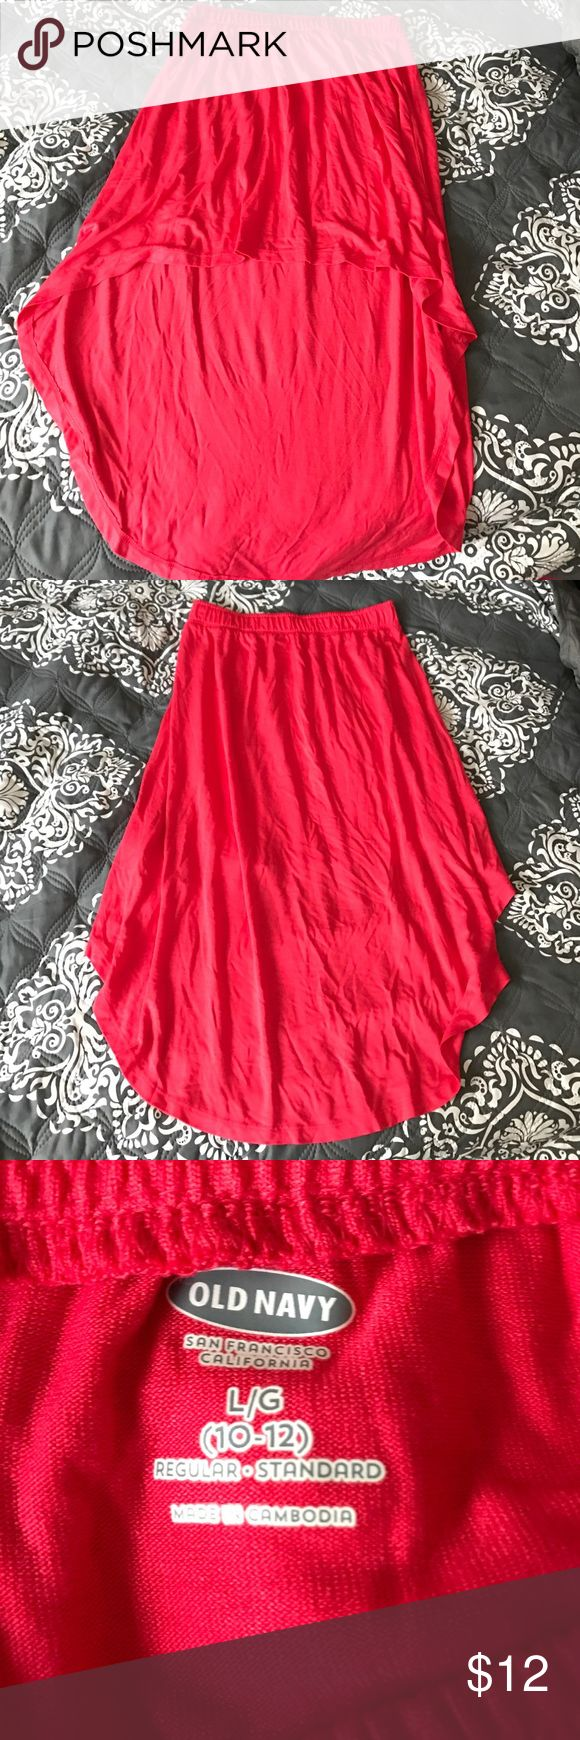 High-low skirt ✌🏻️please read description! ✨ Cute high-low skirt in perfect condition! Never worn, it was bought as a skirt but it is unfortunately a little see thru, so it would be perfect as a swimsuit coverup! Great for those days at the beach 🌊 it's a child's large but fits a woman's extra small or small perfectly!! Old Navy Bottoms Skirts